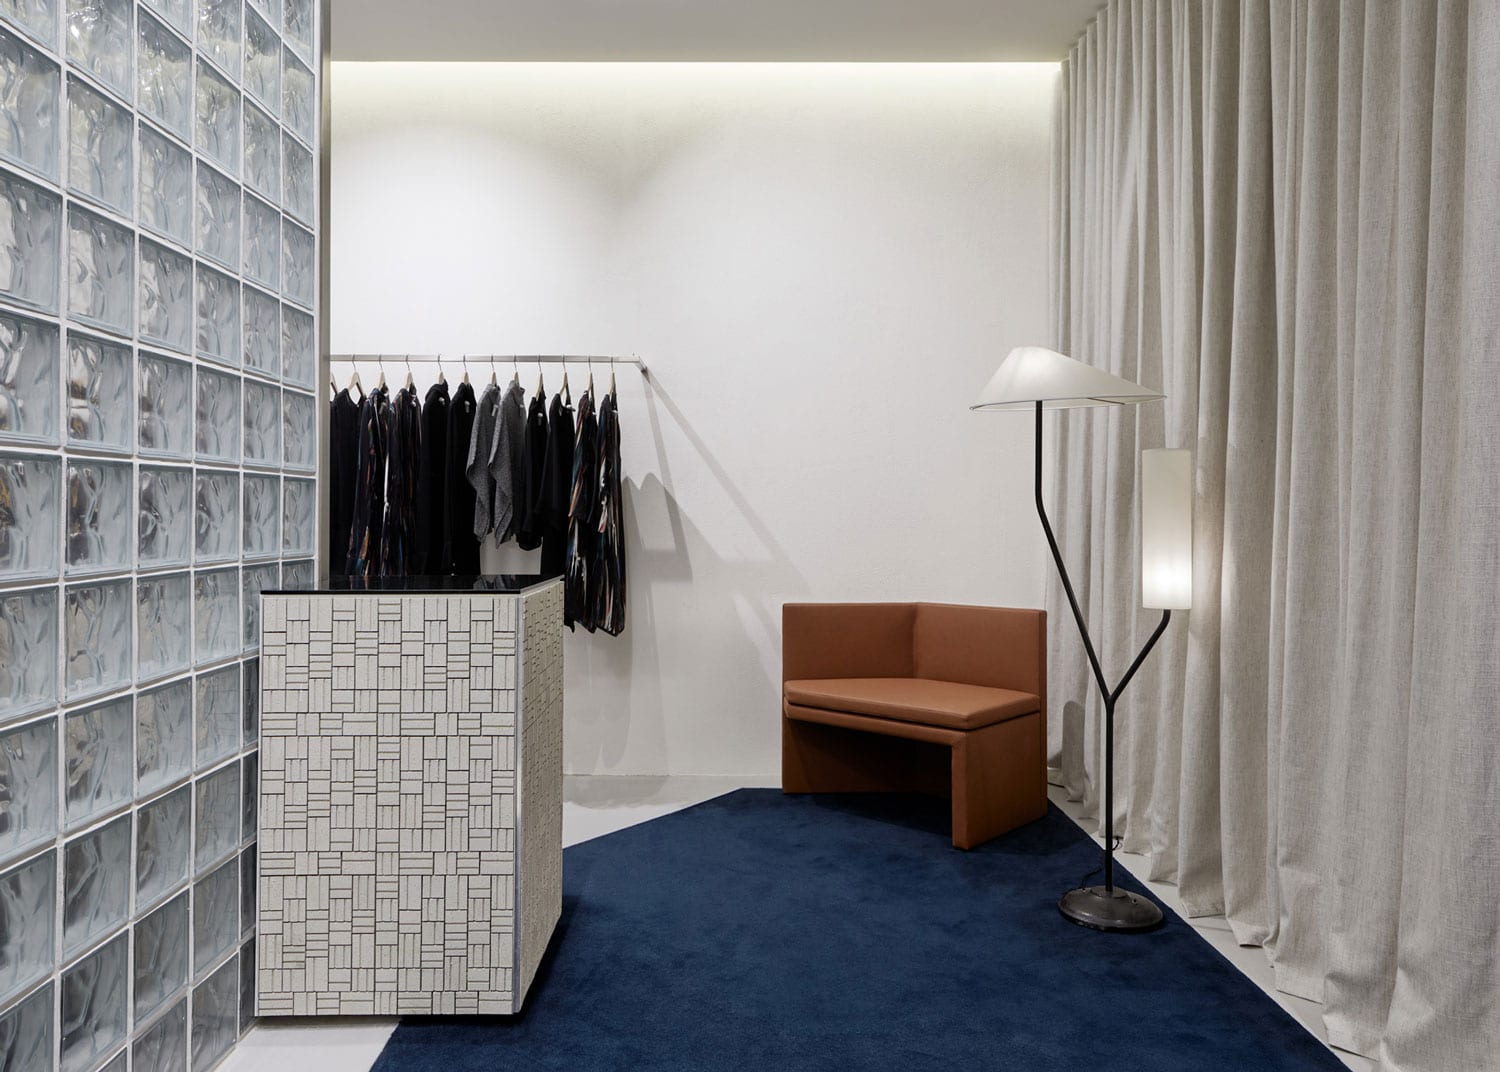 LIFEwithBIRD Store in Sydney's Bondi Junction by Studio Wonder | Yellowtrace